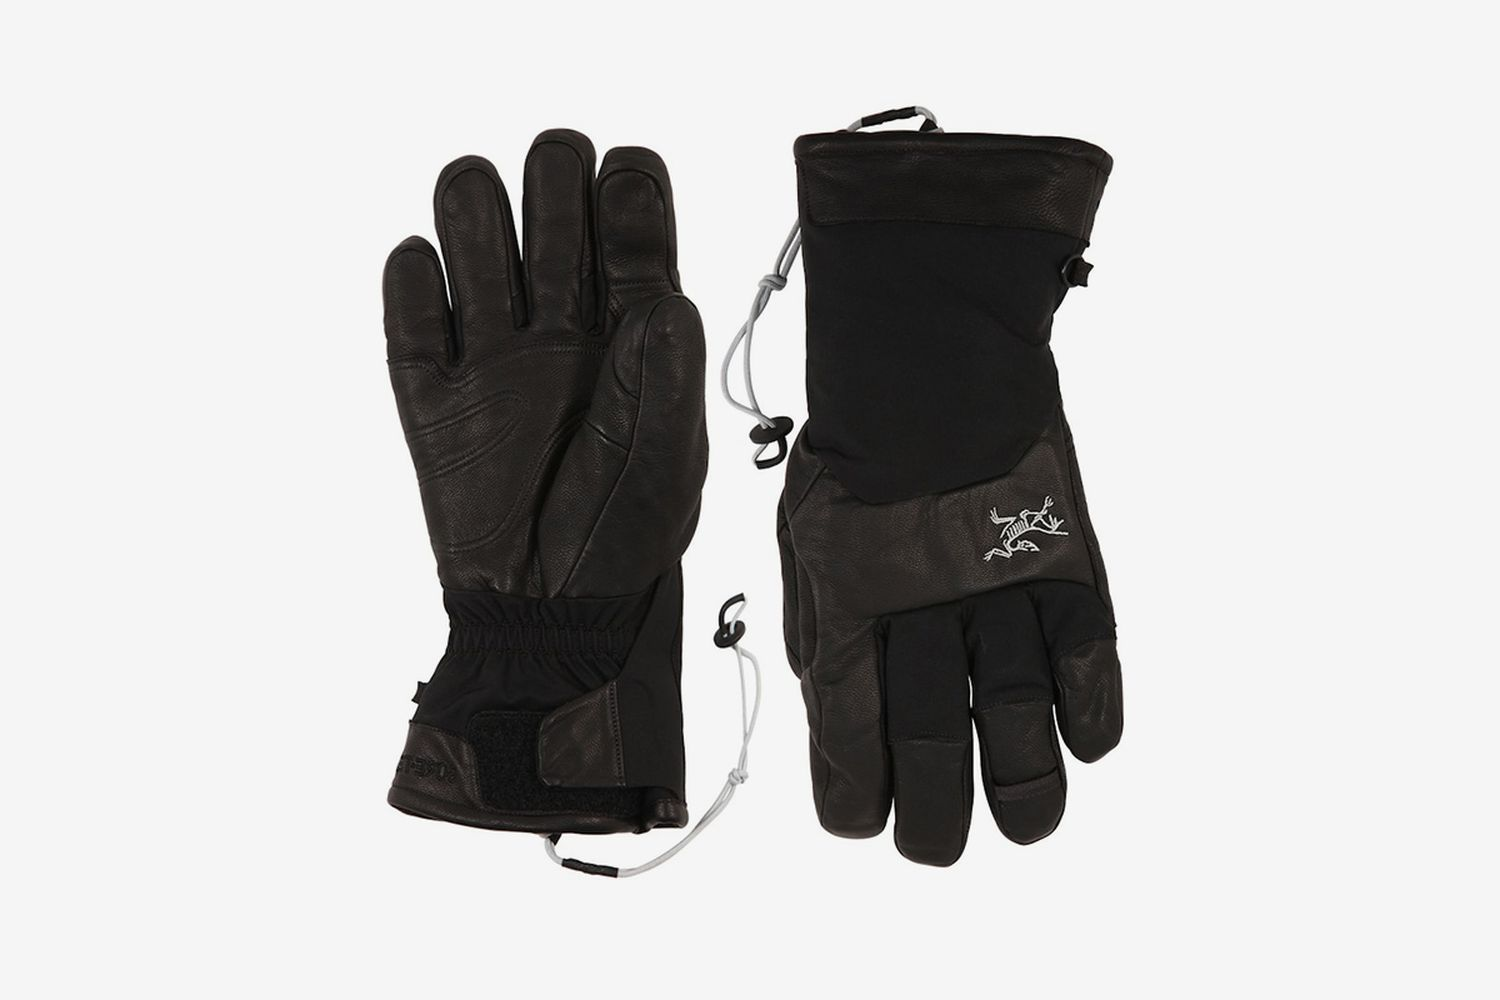 Sabre Nylon Gloves